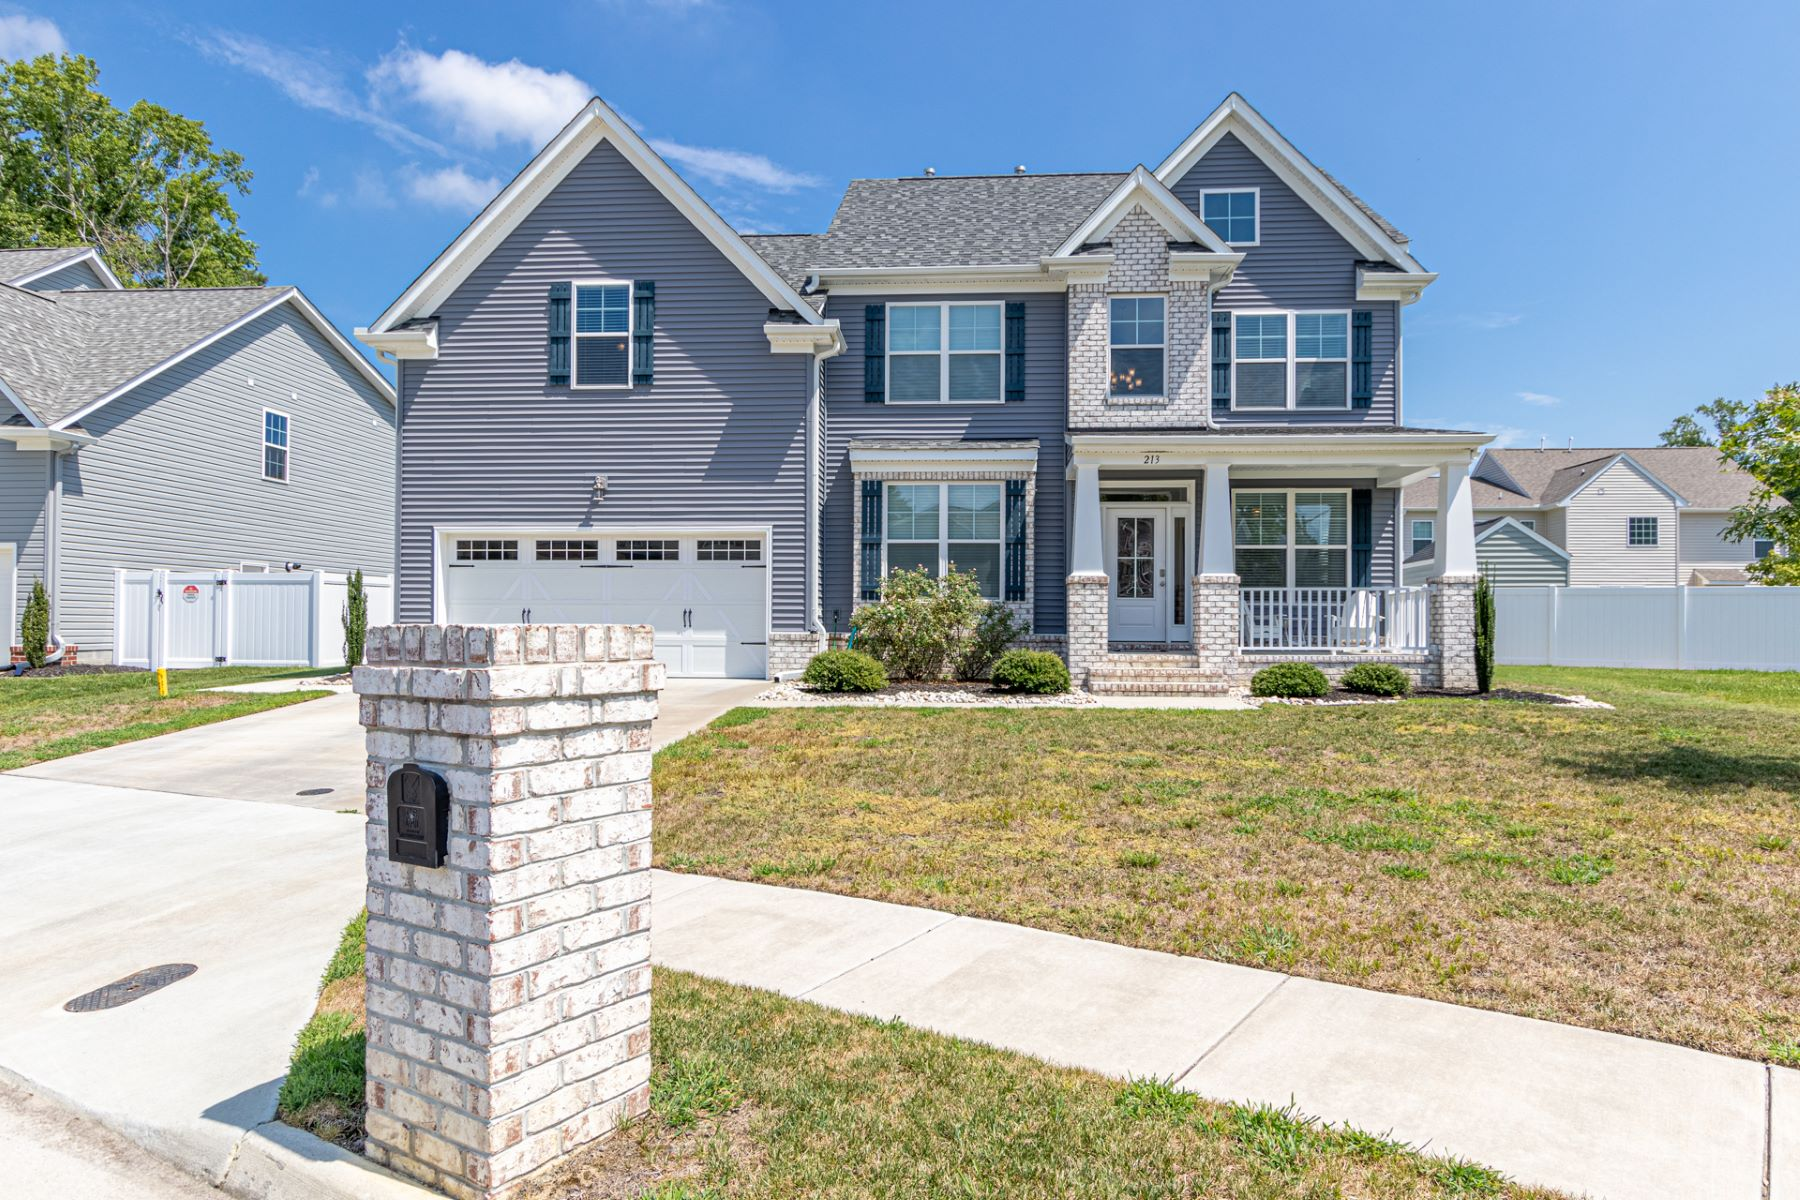 Single Family Homes for Active at BRABBLE SHORES 213 Creston Court Chesapeake, Virginia 23323 United States